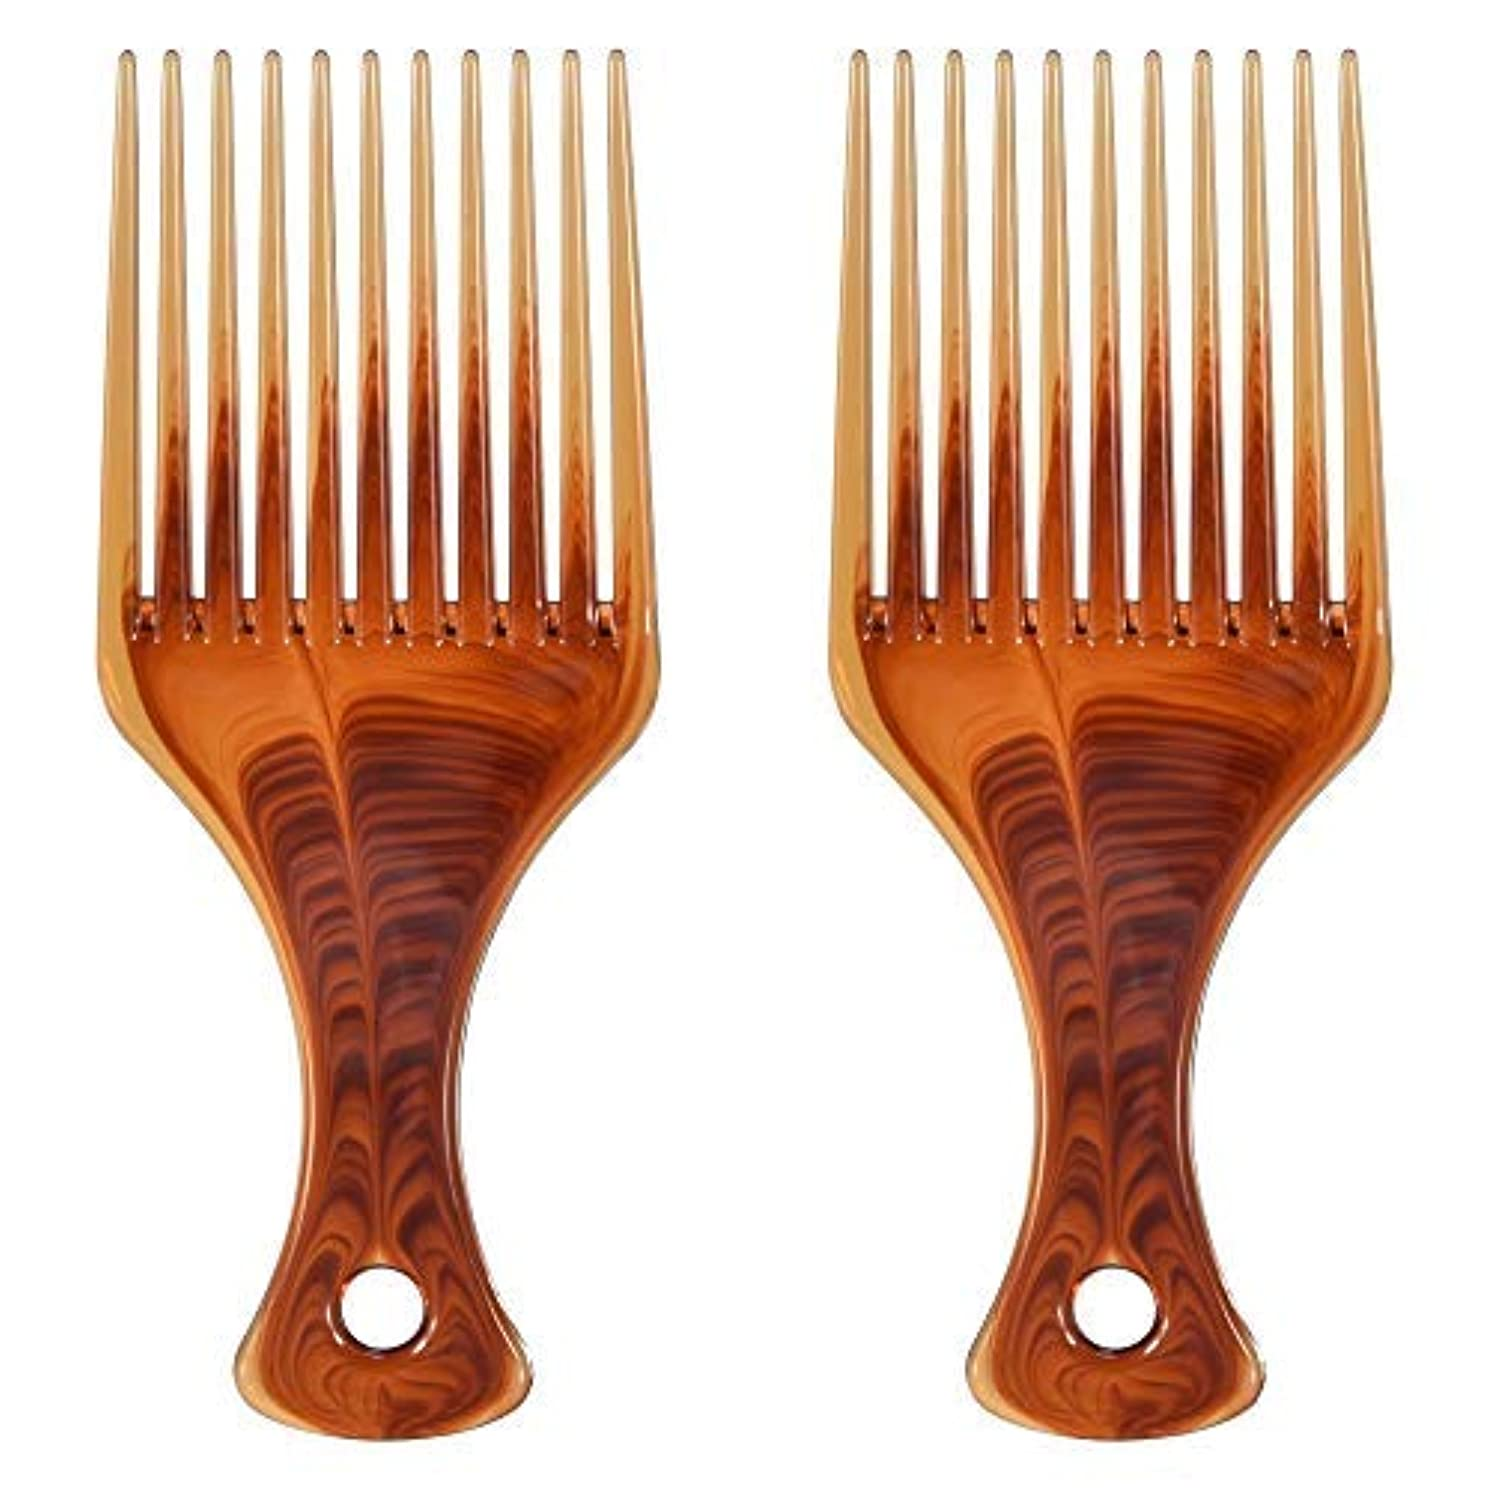 める寝室病気のMosuch Hair Pick, 2pcs Super Smooth Picks Comb Hairdressing Wide Tooth Modeling Big Tooth Comb [並行輸入品]